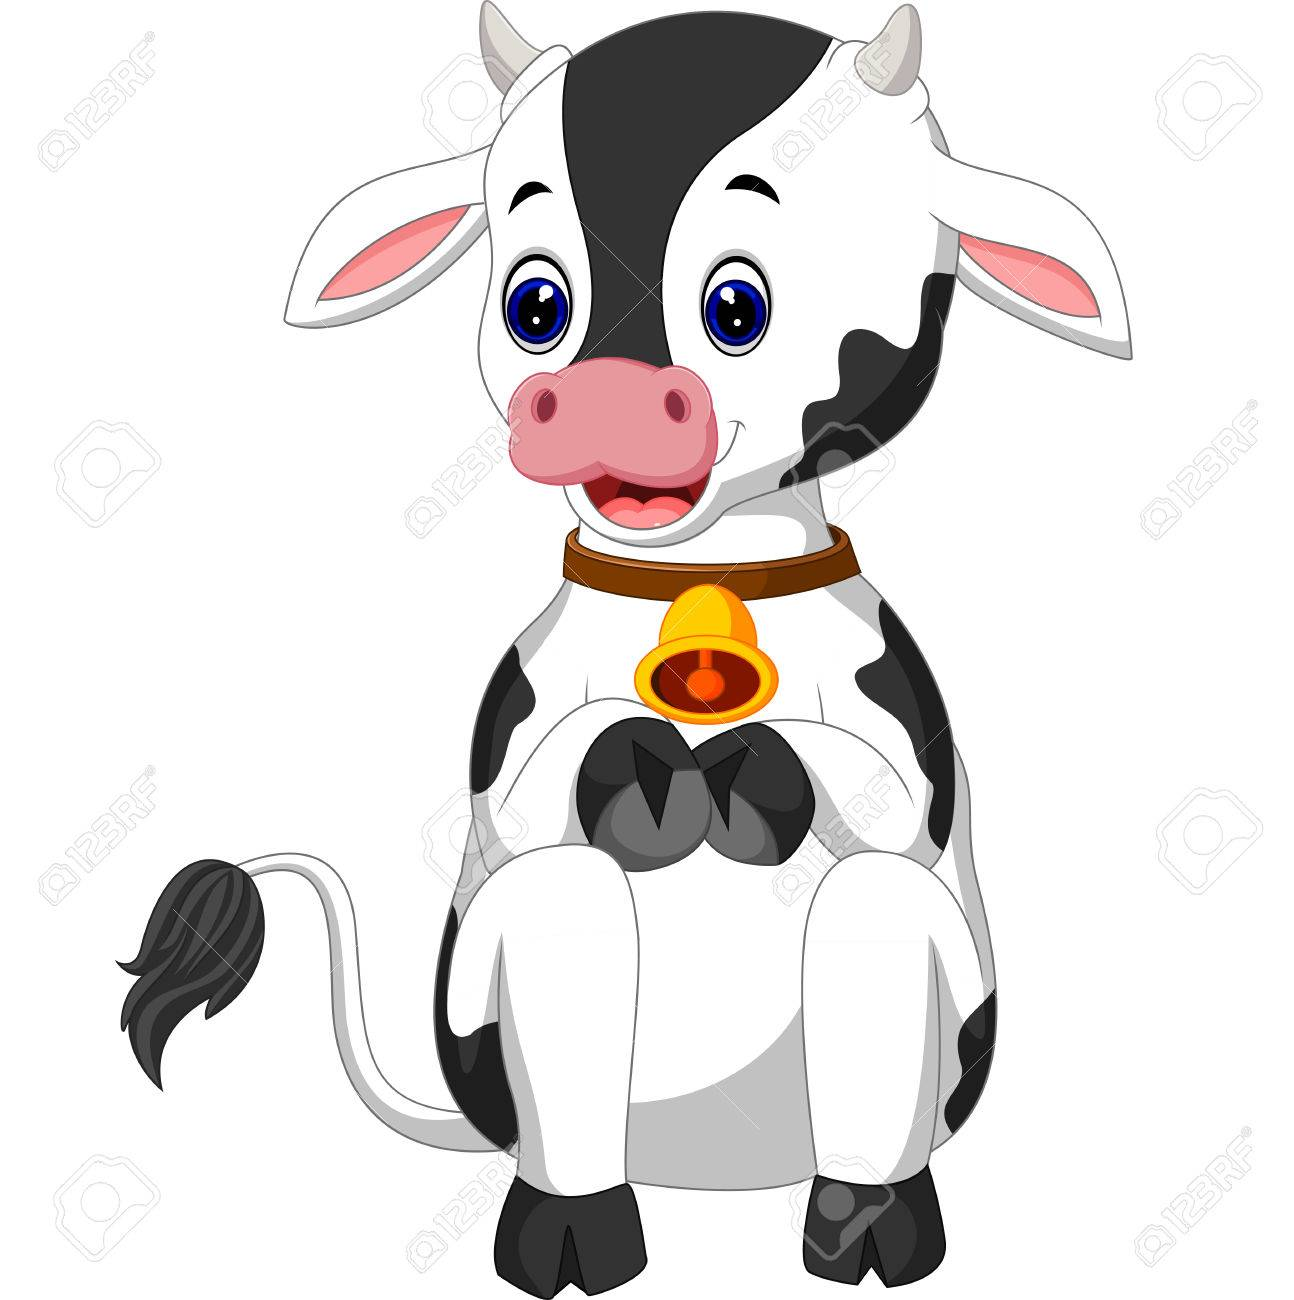 1294x1300 Cute Baby Cow Cartoon Stock Photo, Picture And Royalty Free Image